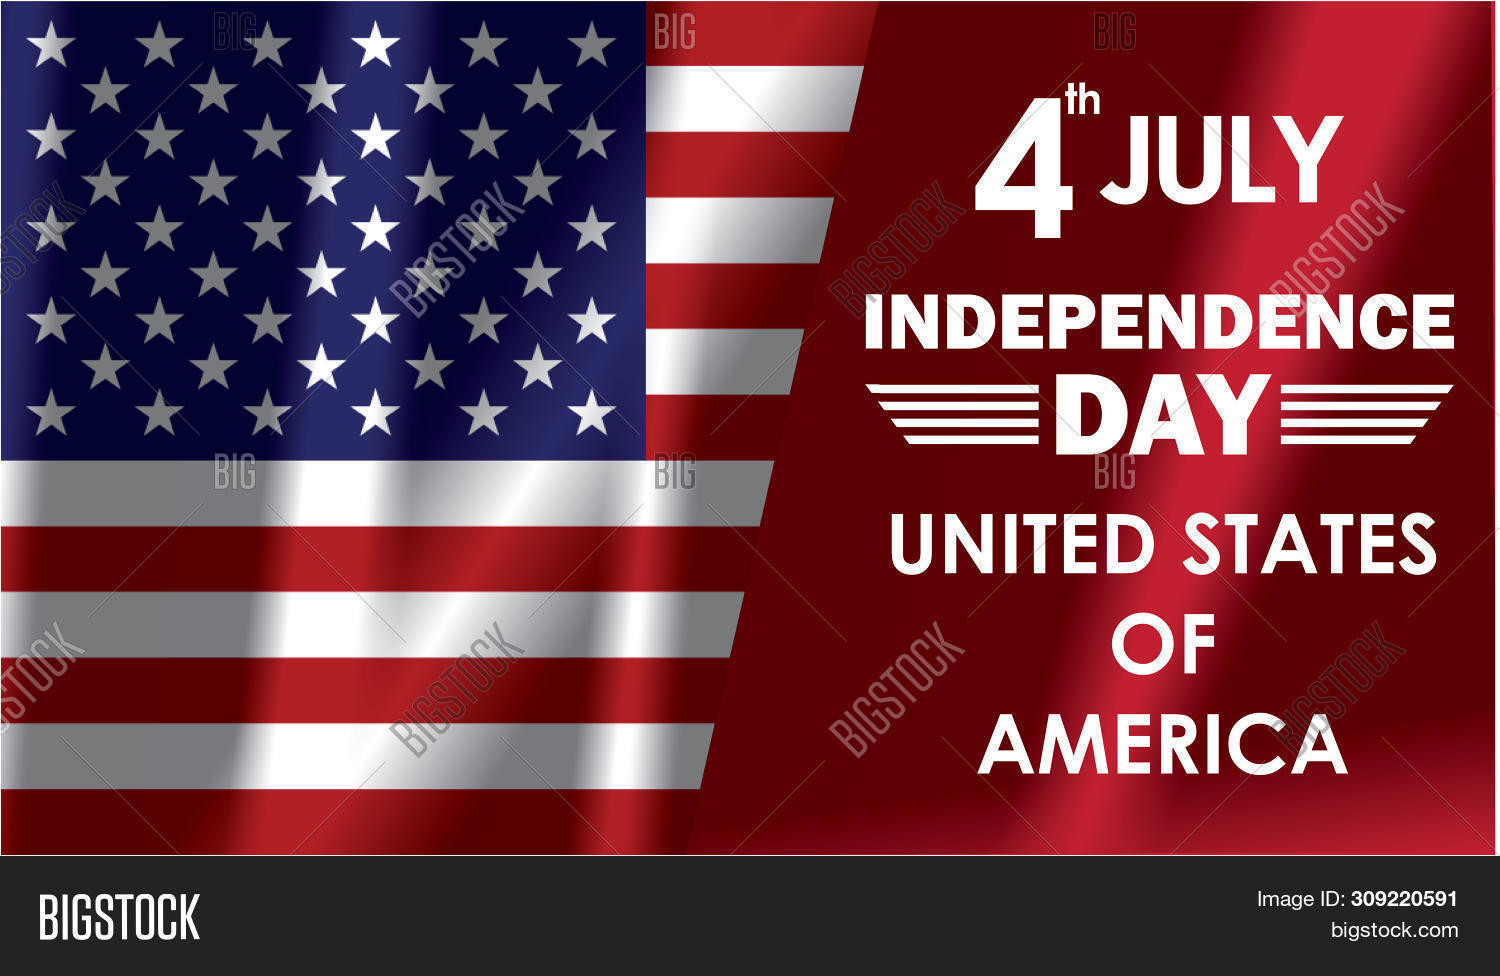 Independence day USA illustration with flah United state of america.4th of July USA Independence Day greeting card with waving american national flag. Fourth of July. 4th of July holiday banner. USA Independence Day banner